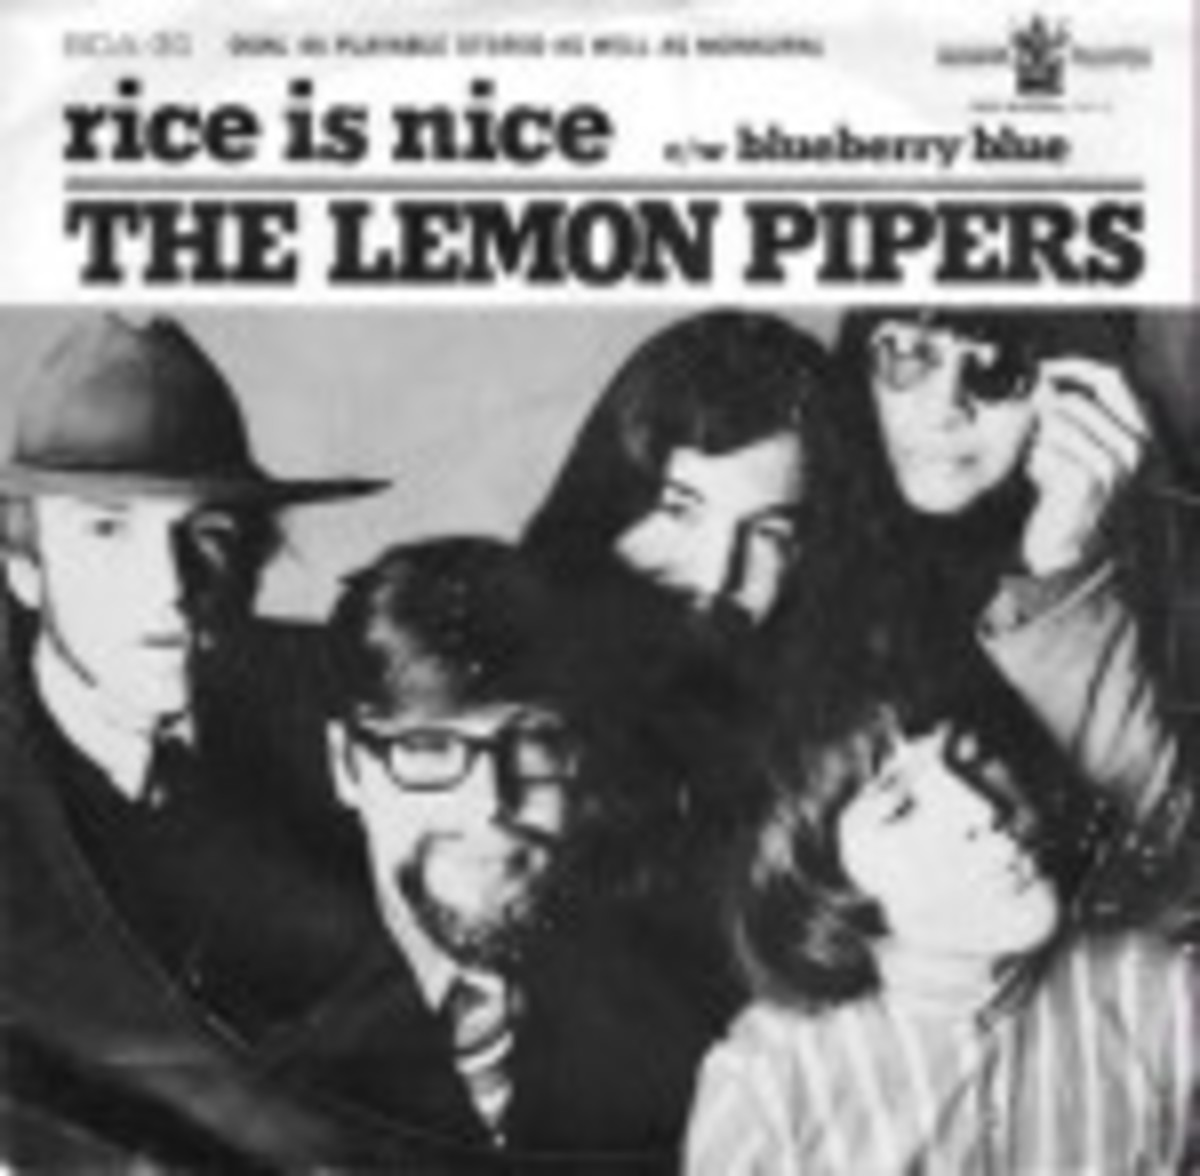 The Lemon Pipers Rice is Nice picture sleeve